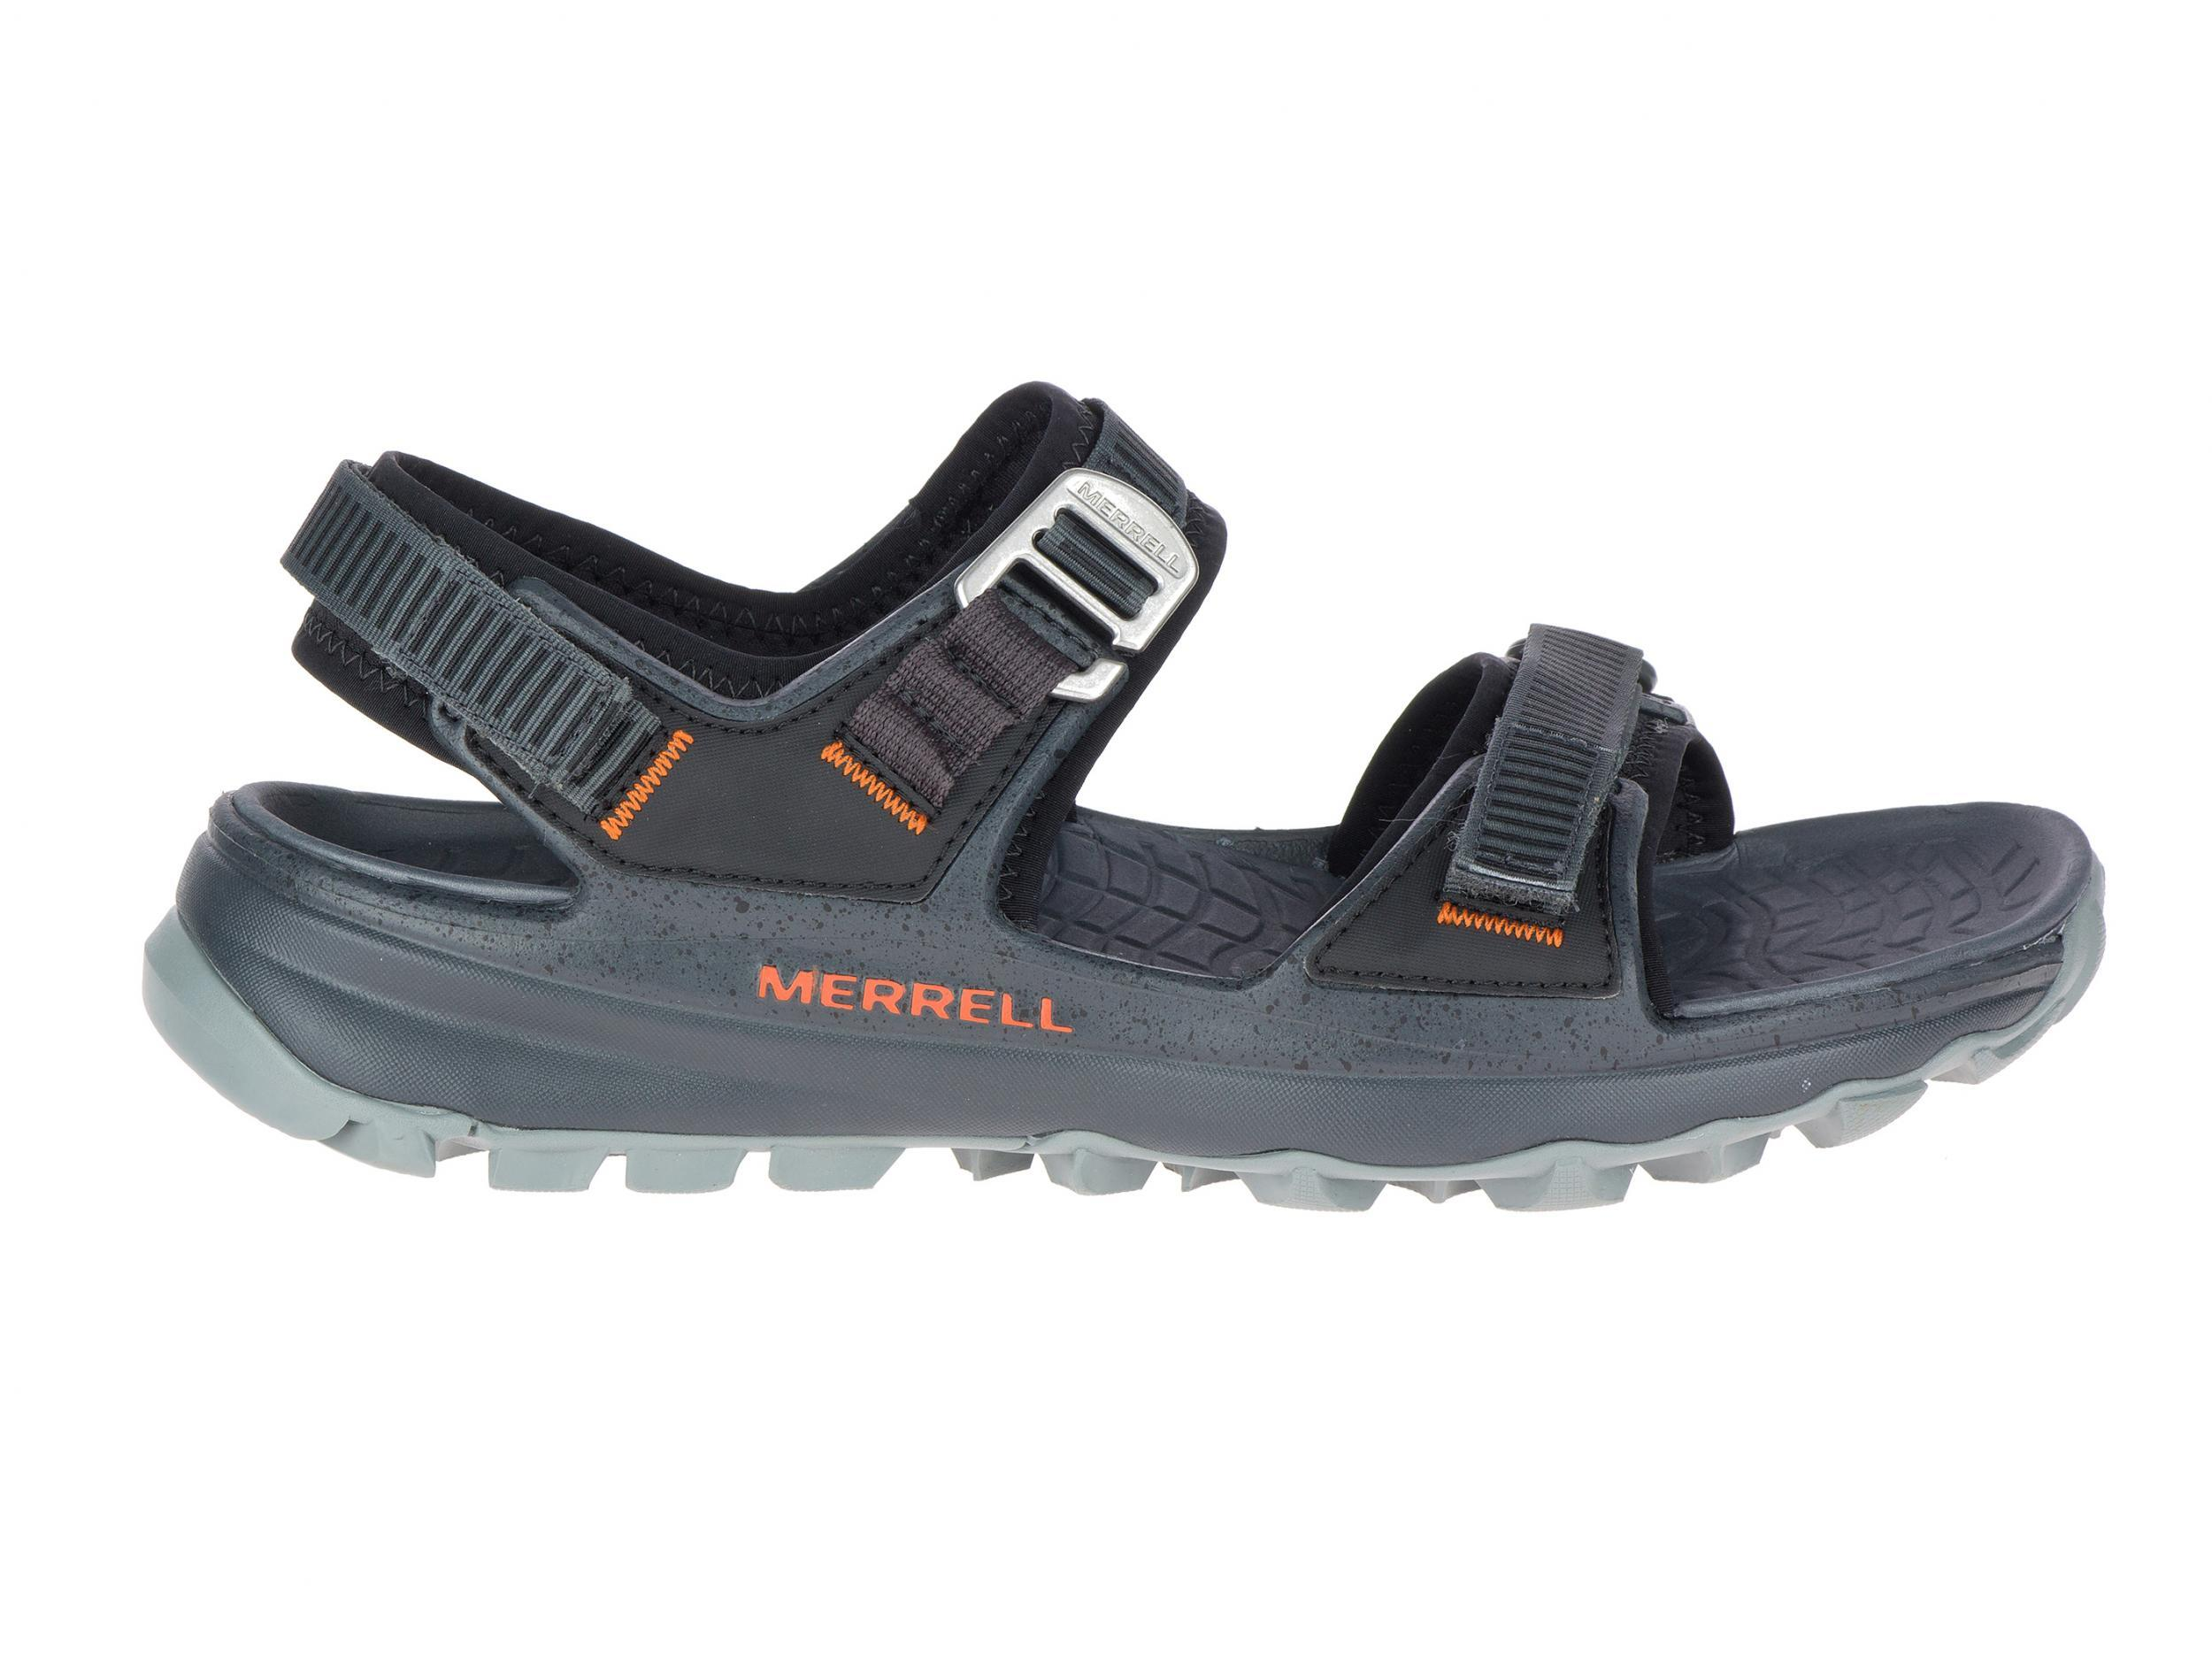 6e02e41c38f4fc Best men's walking sandals that are breathable, comfortable and supportive